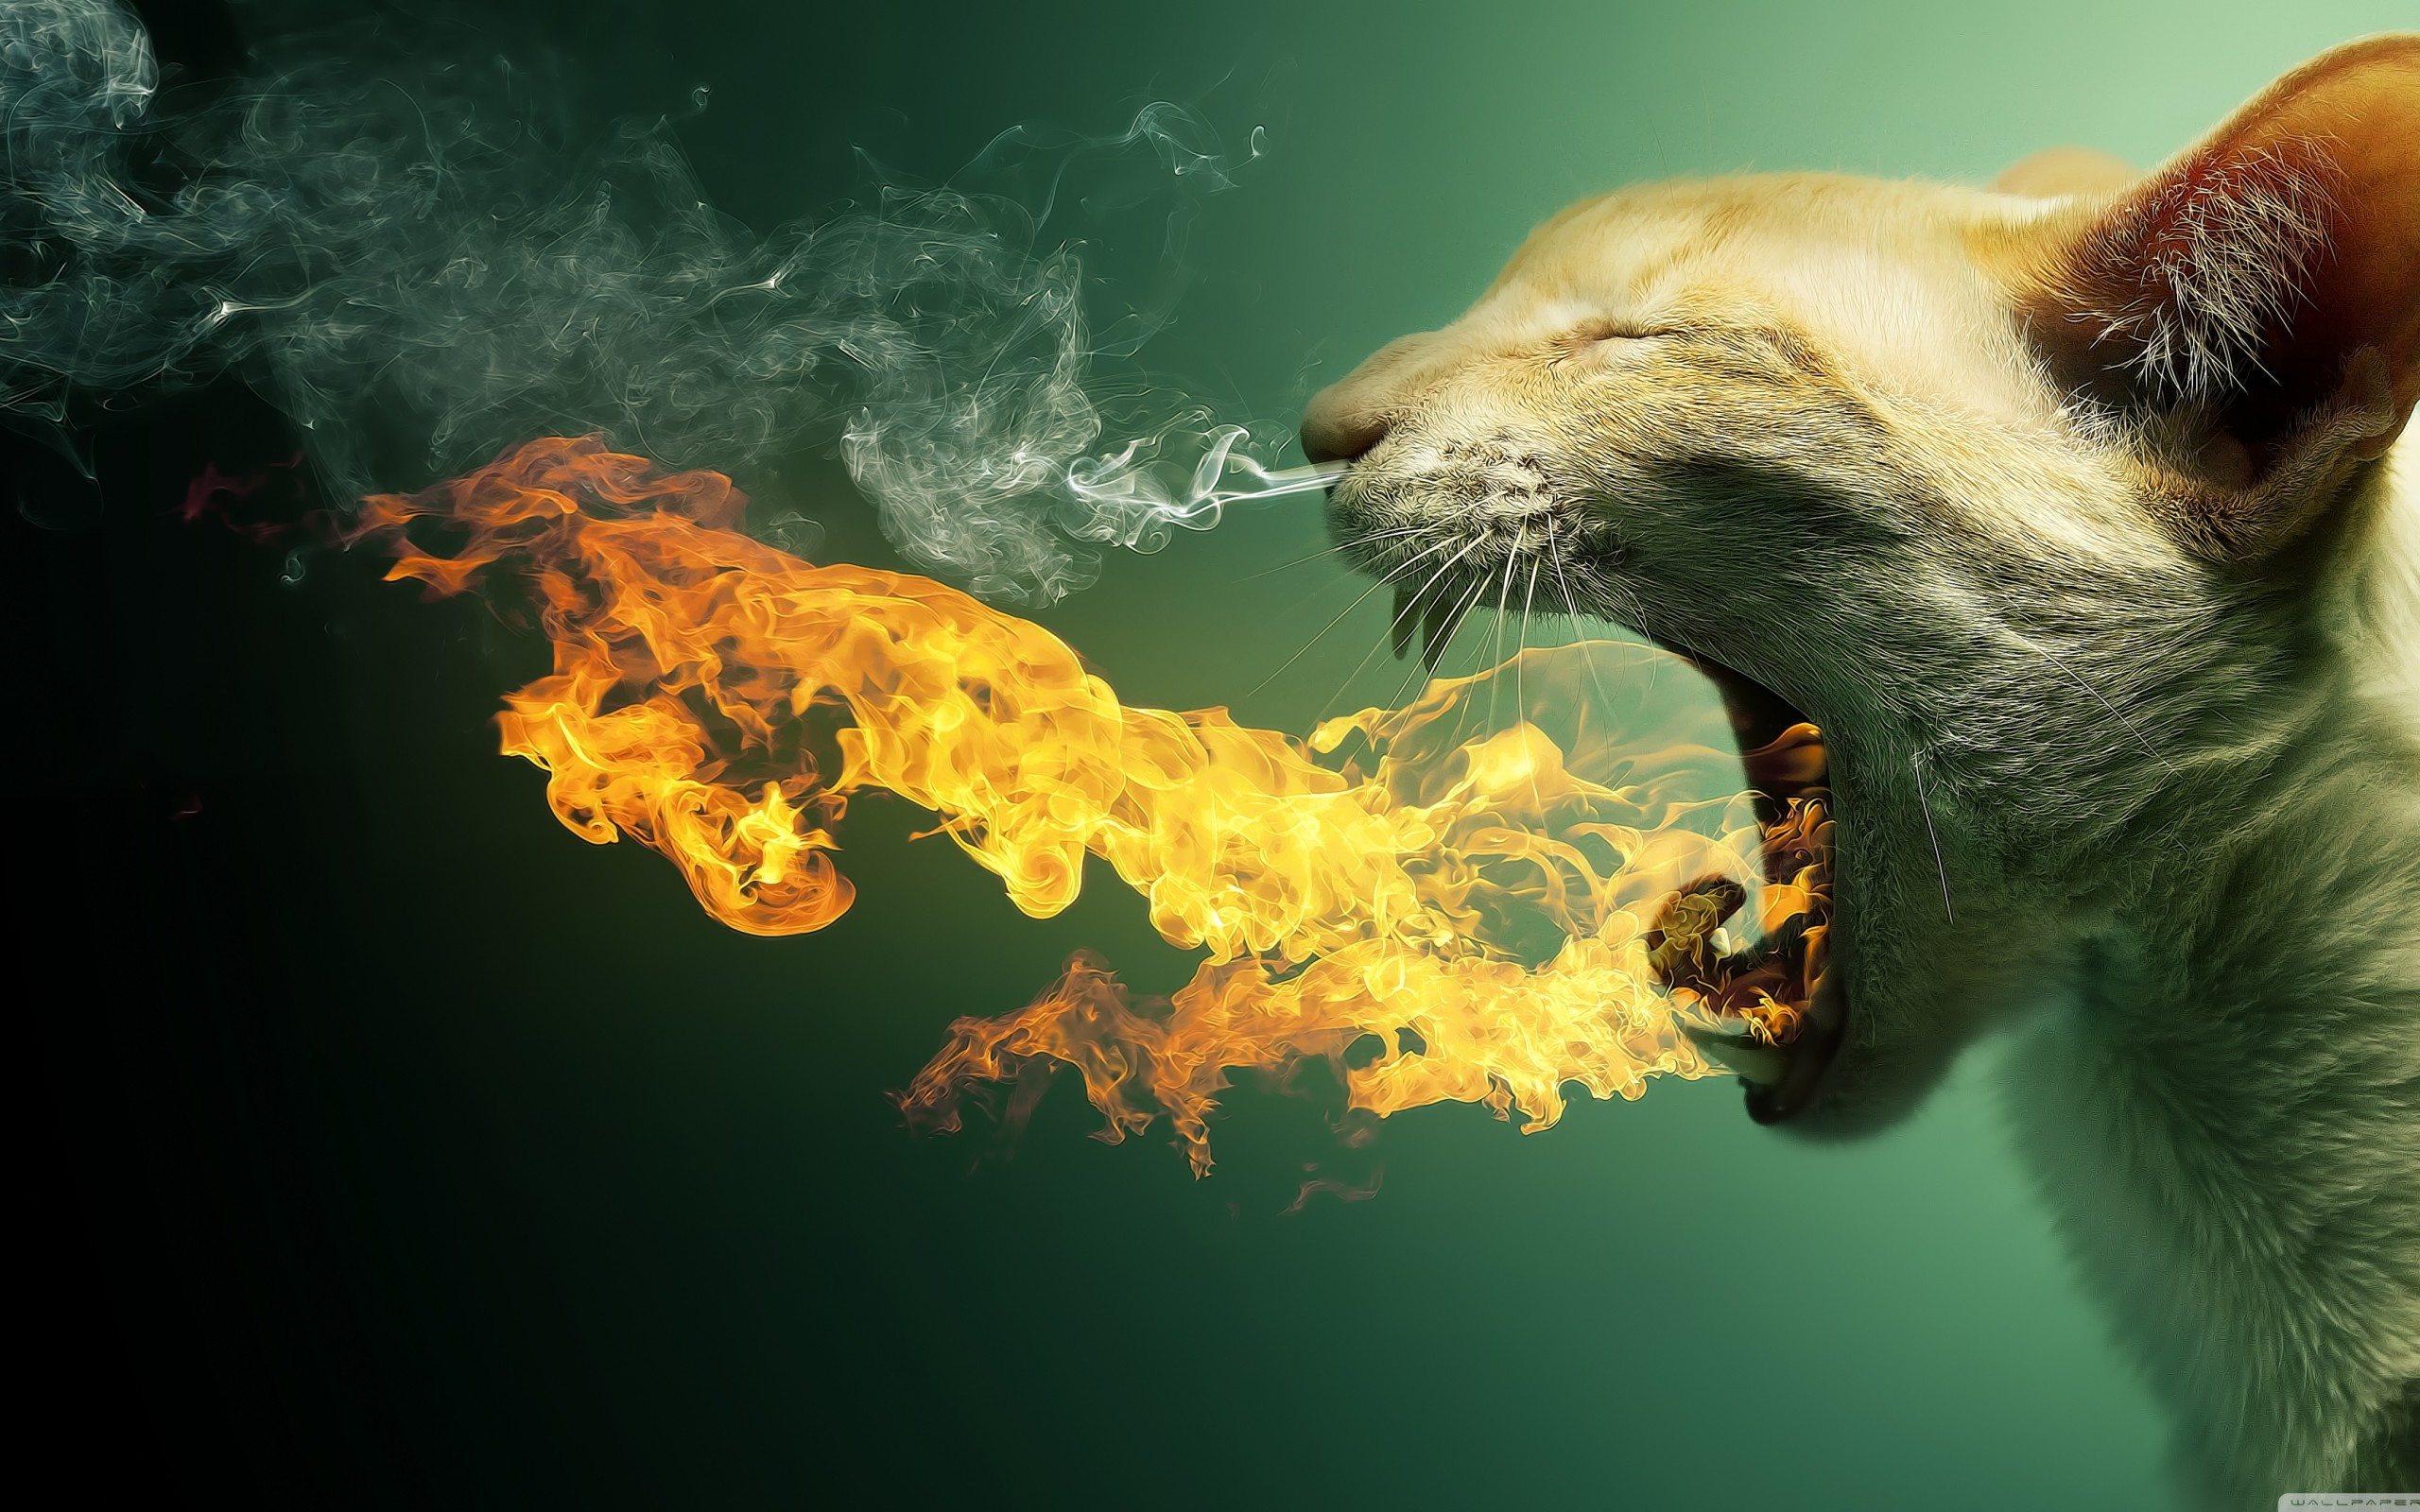 Flaming Cat Funny Creative Animal Wallpaper HD Wallpapers 2560x1600